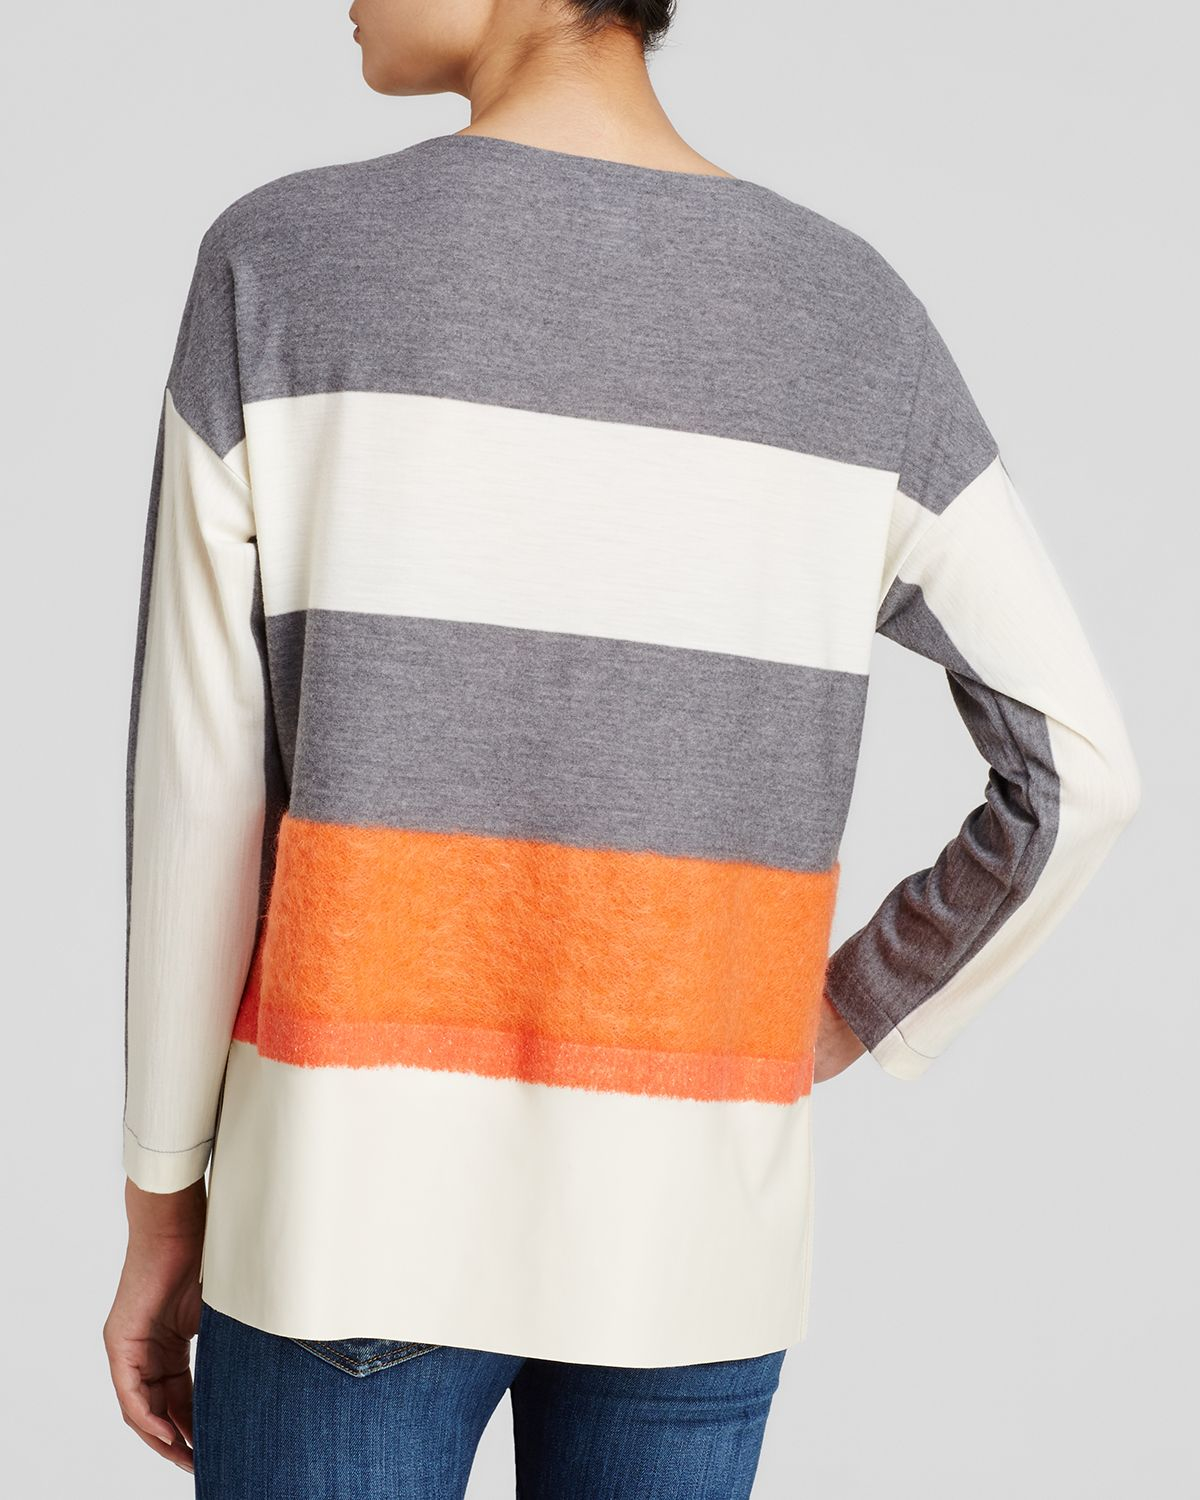 148 Best Images About Fingernail Art On Pinterest: Lafayette 148 New York Color Block Mixed Media Top In